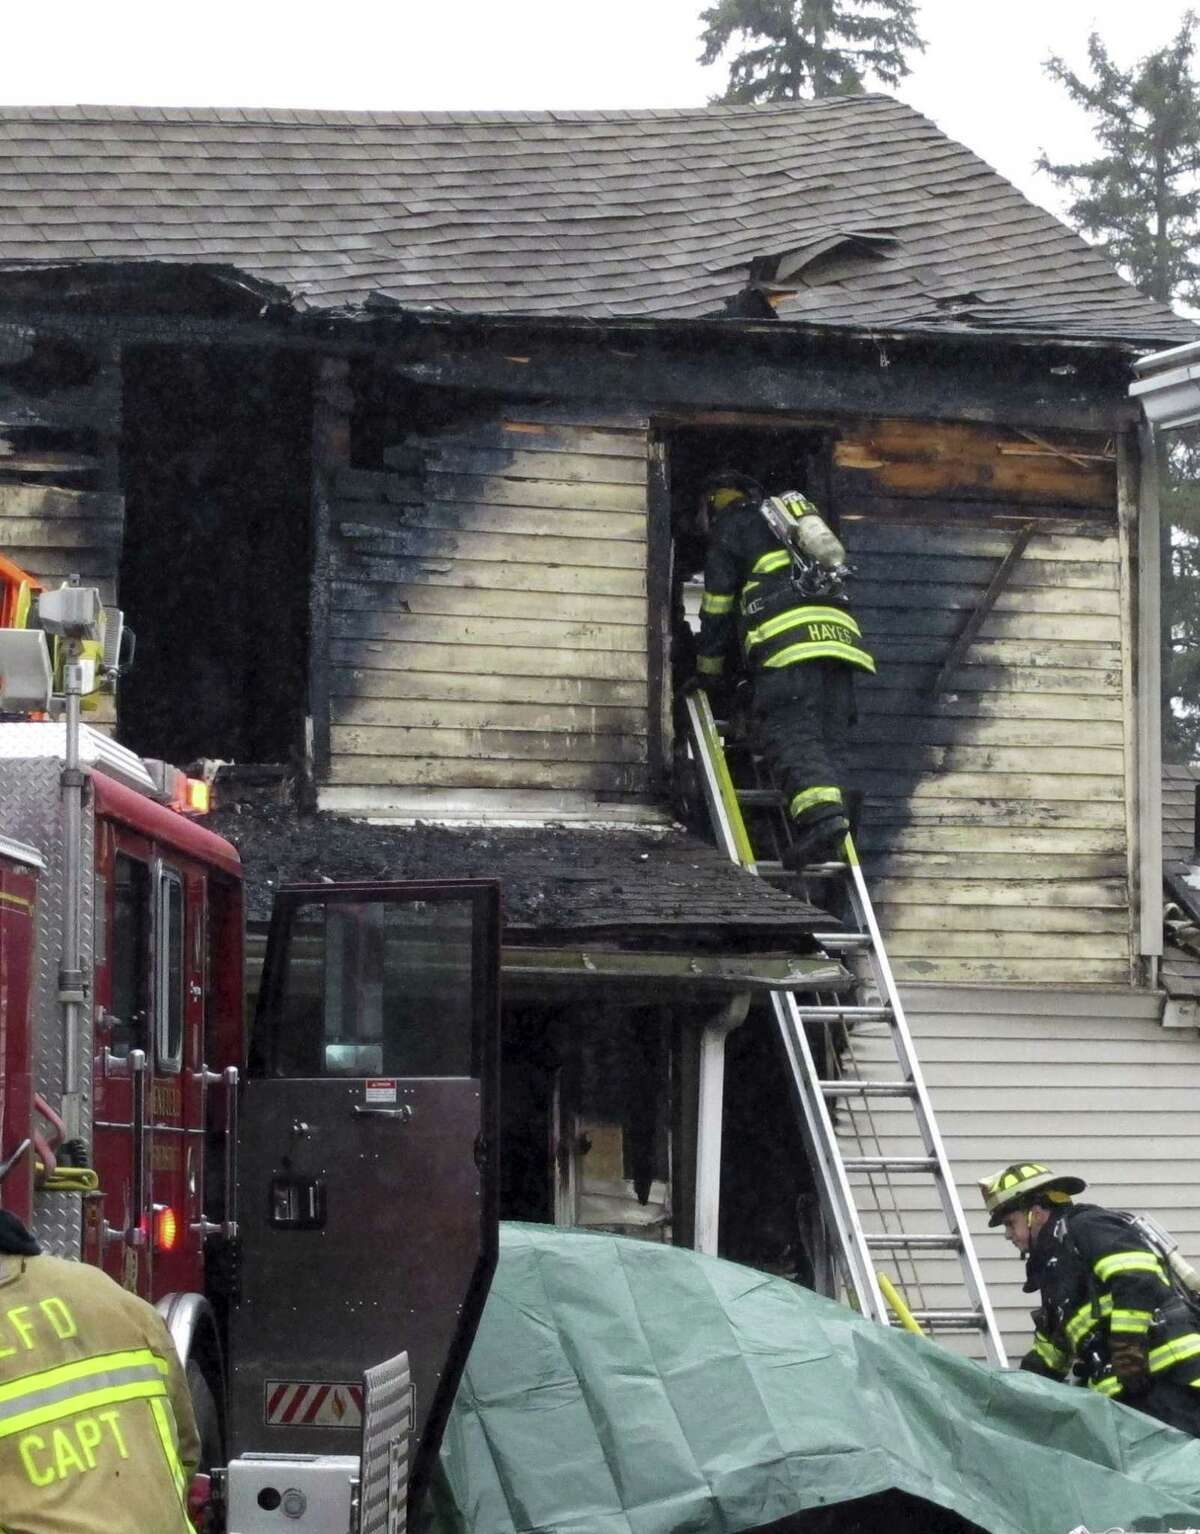 Firefighters work the scene of a house blaze Wednesday, Dec. 10, 2014, in Enfield, Conn., about 20 miles north of Hartford. Officials said four people were unaccounted for.